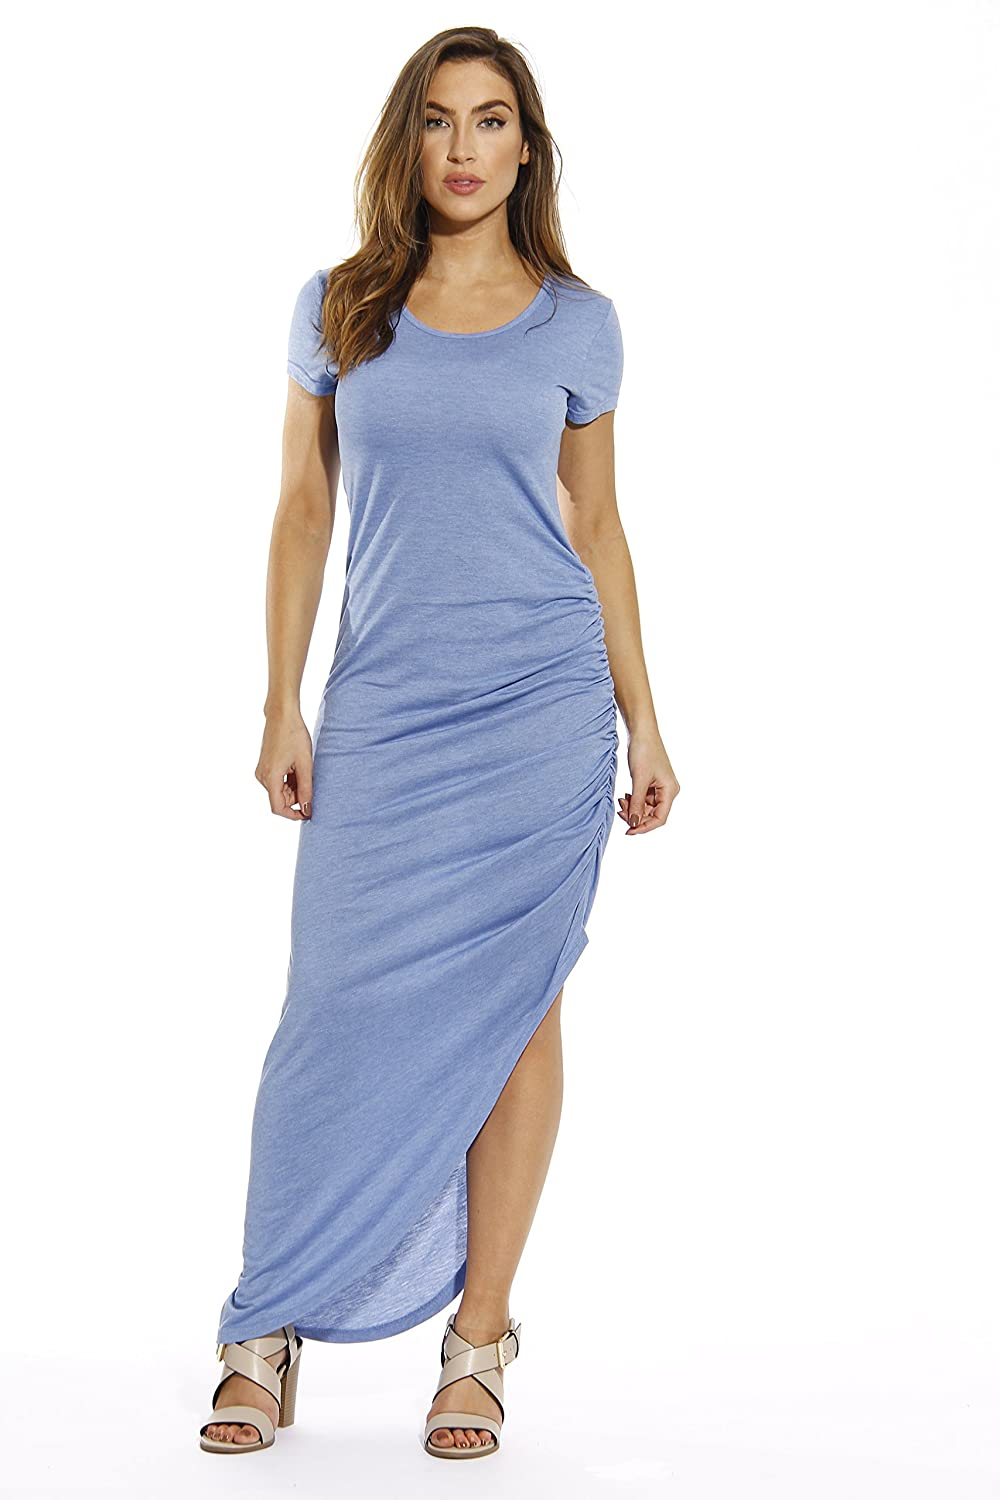 c82008d21ab4 WALK OUT IN STYLE  Turn heads wherever you go with Just Love s hi low dress.  With its asymmetrical hem